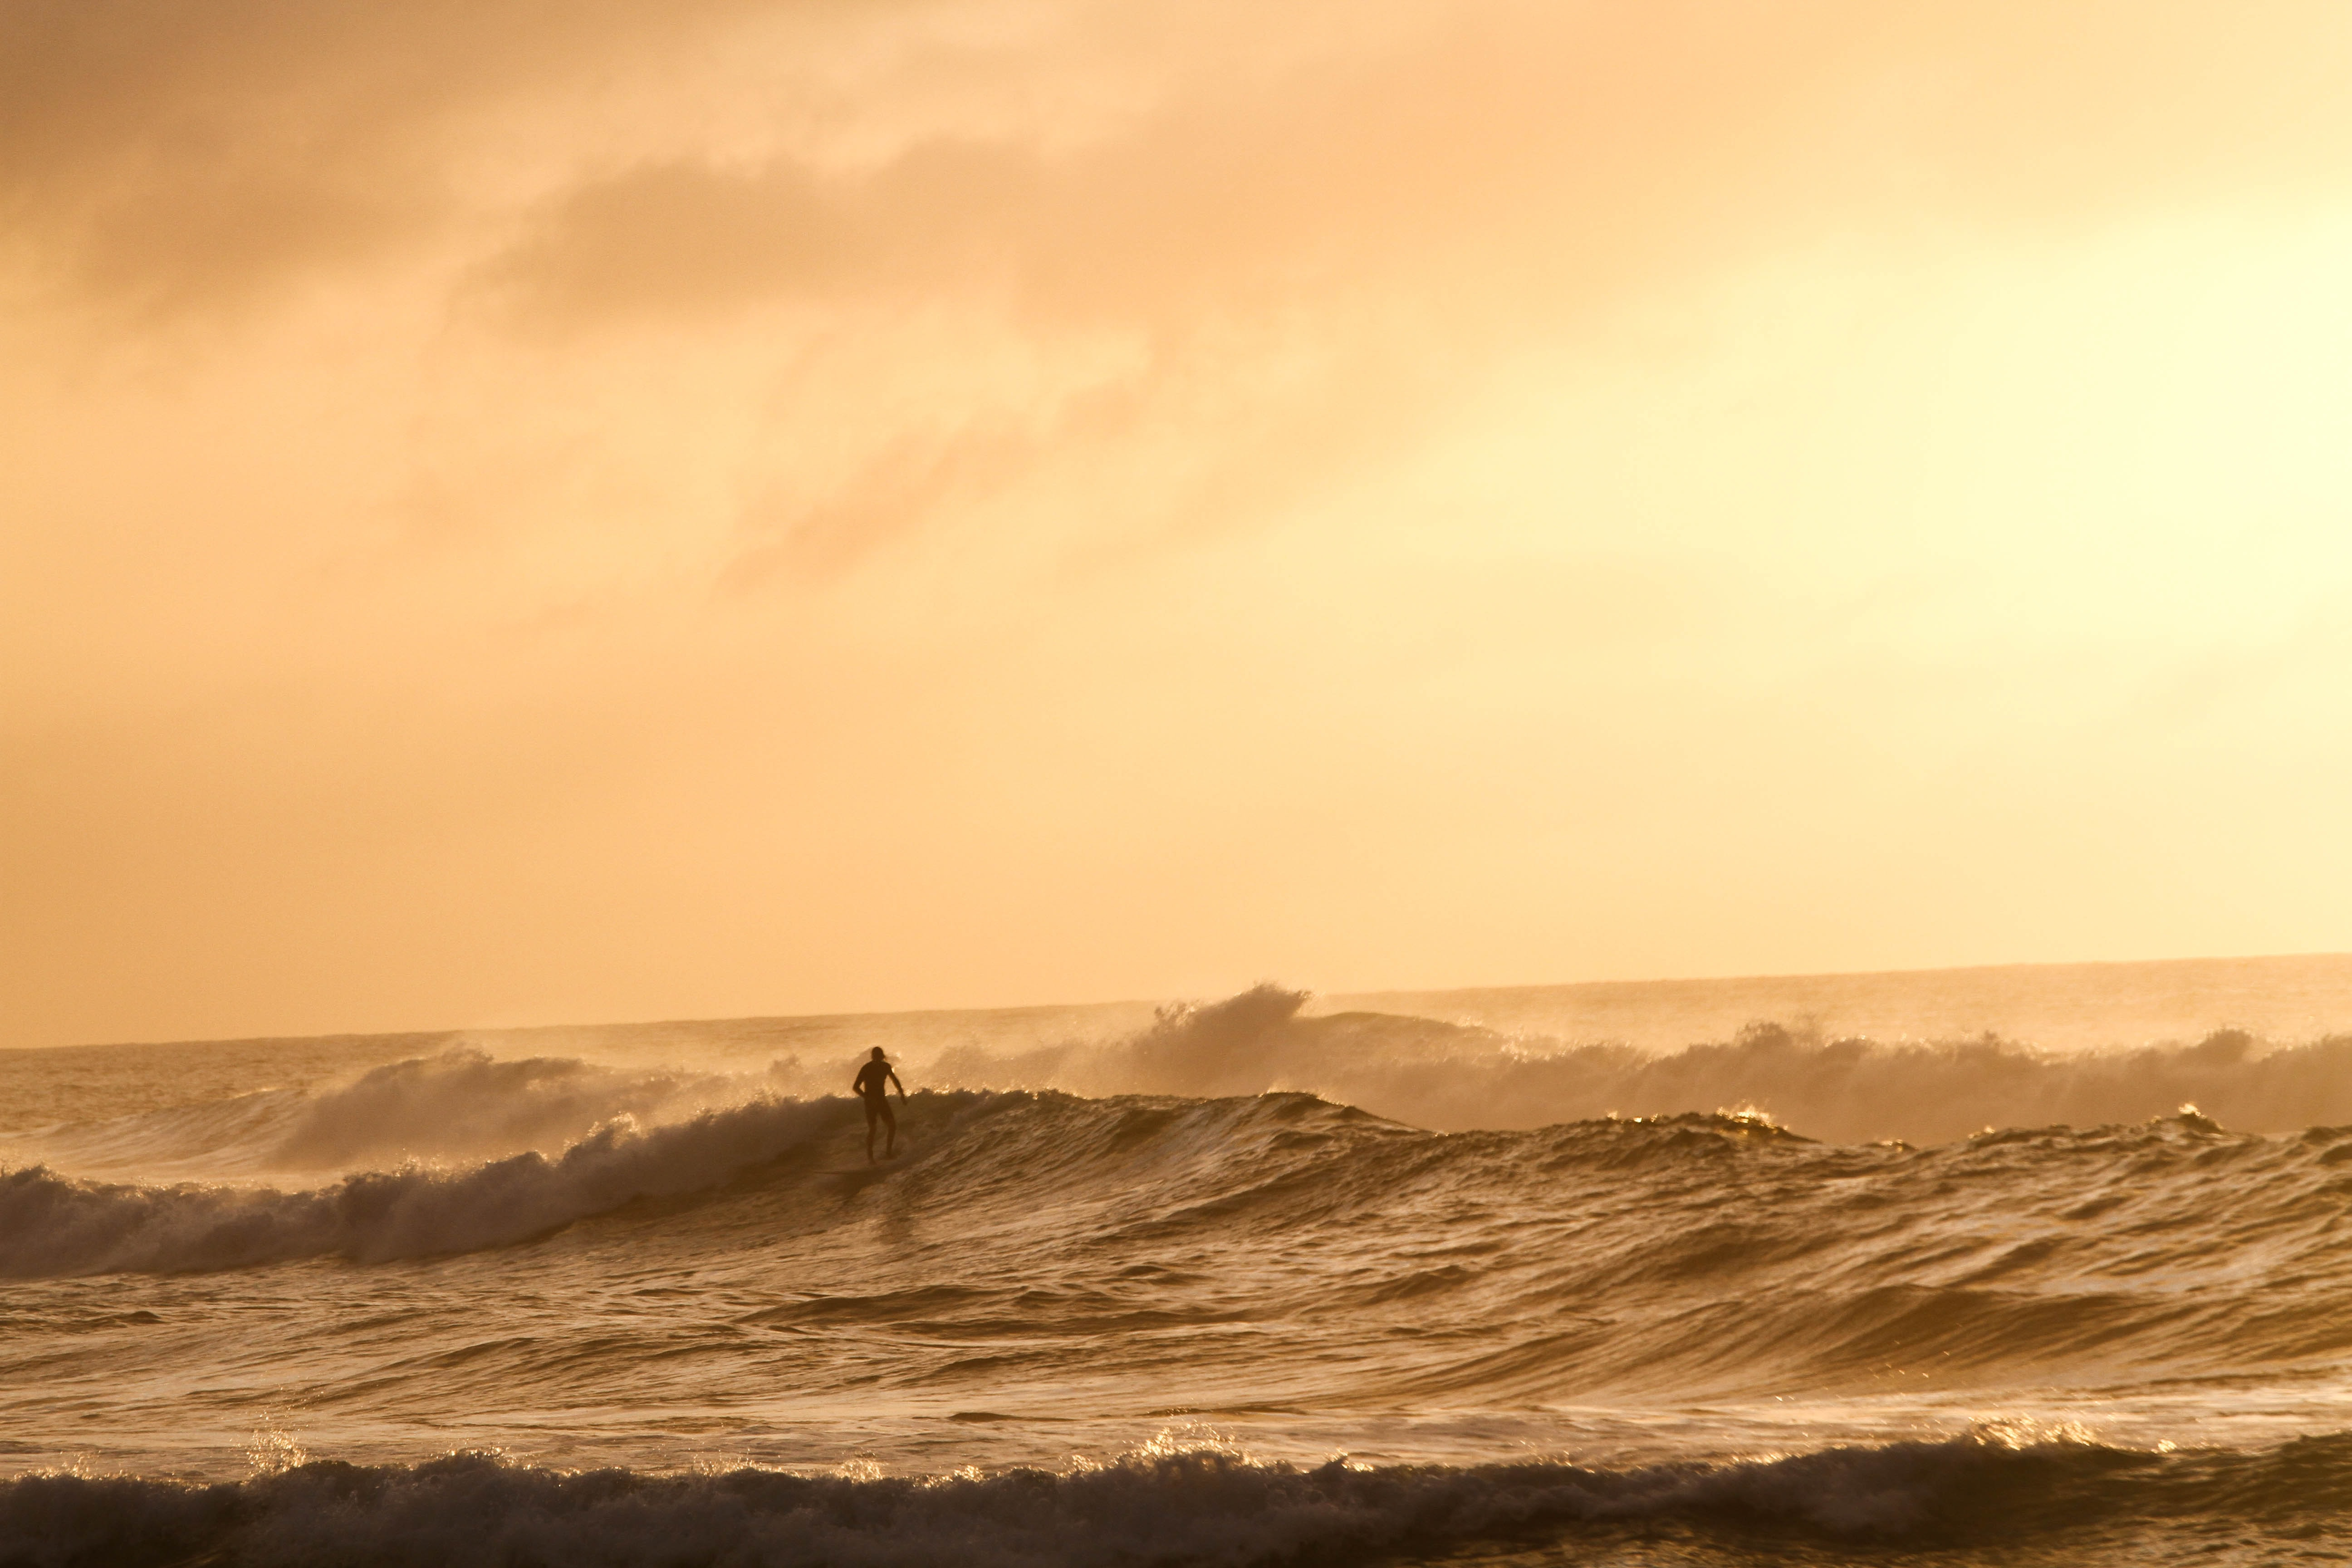 Large waves coming in during sunset.